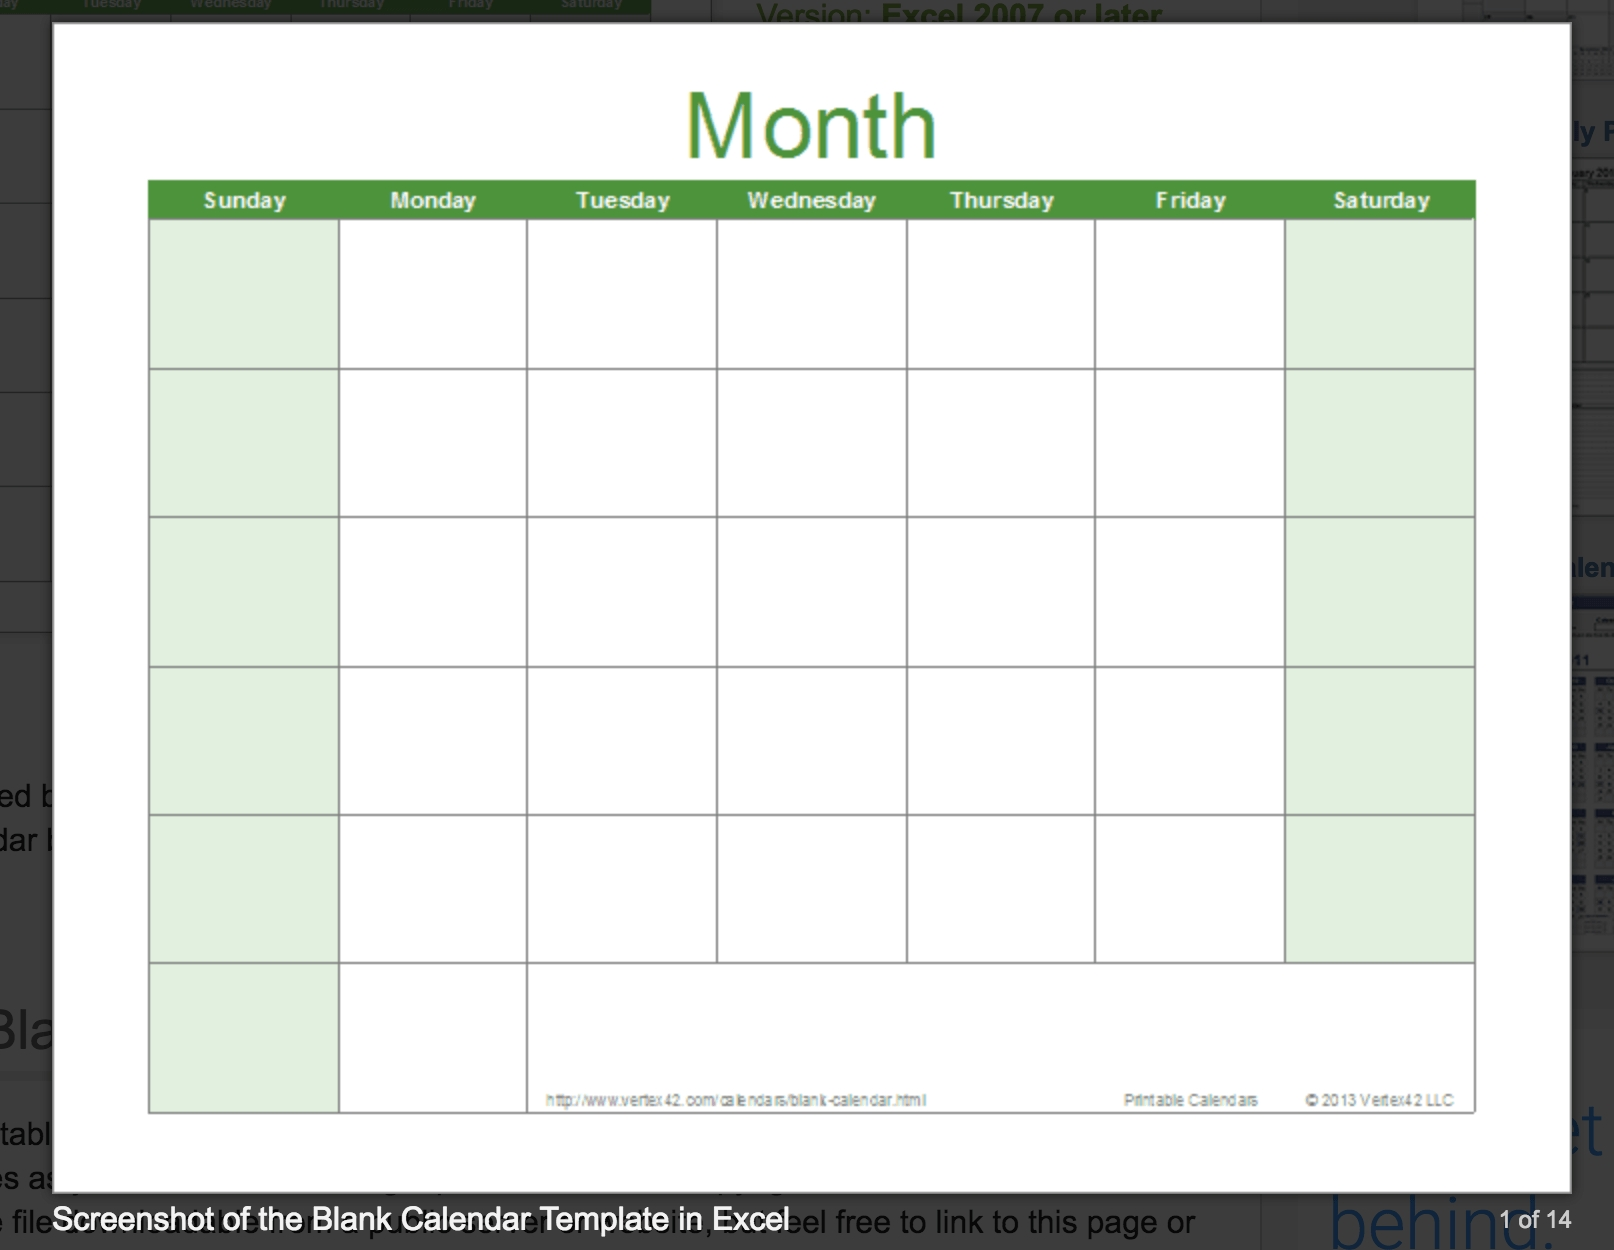 Blank Calendar: Wonderfully Printable 2019 Templates inside Template Of A Blank Calendar Of A Month